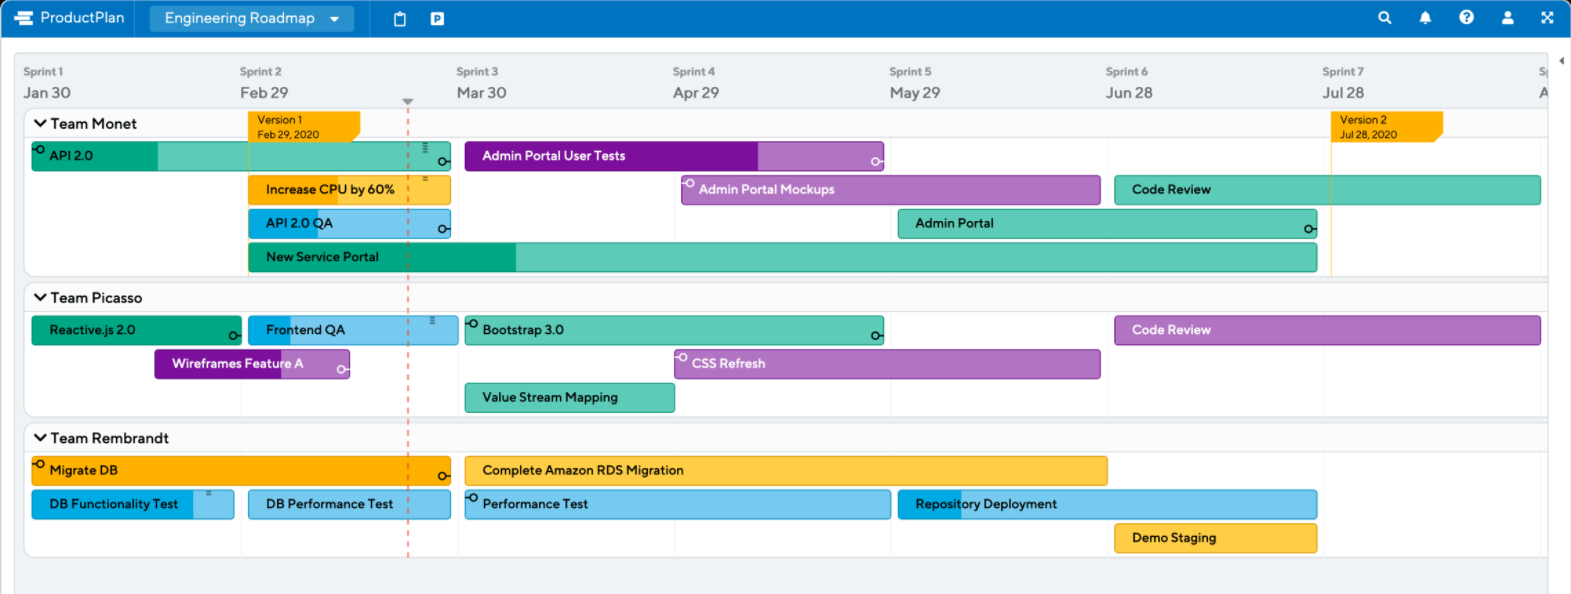 product roadmap template for developers